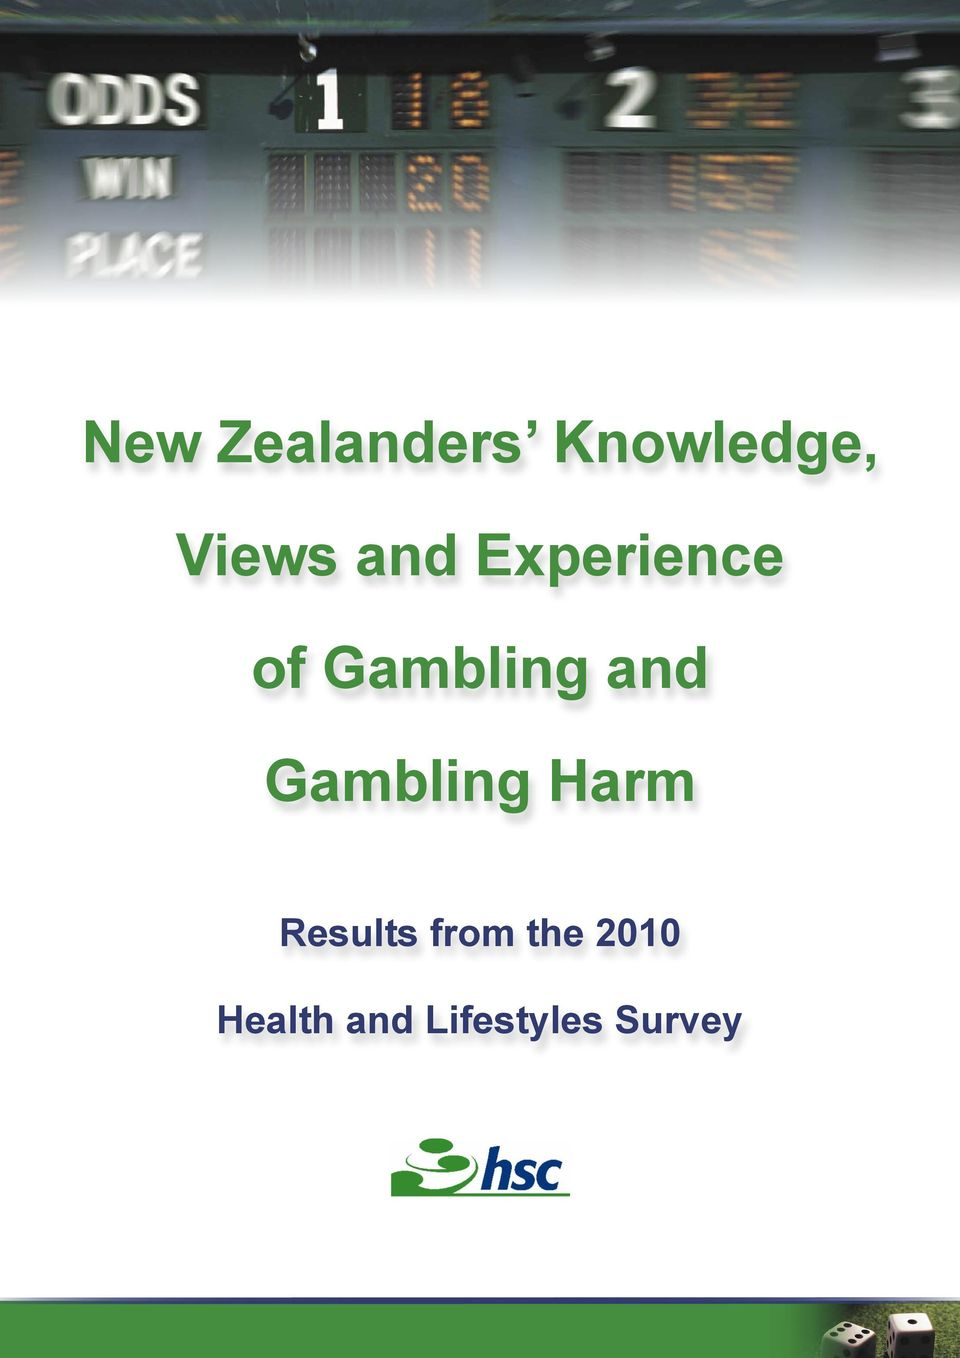 Gambling Harm Results from the